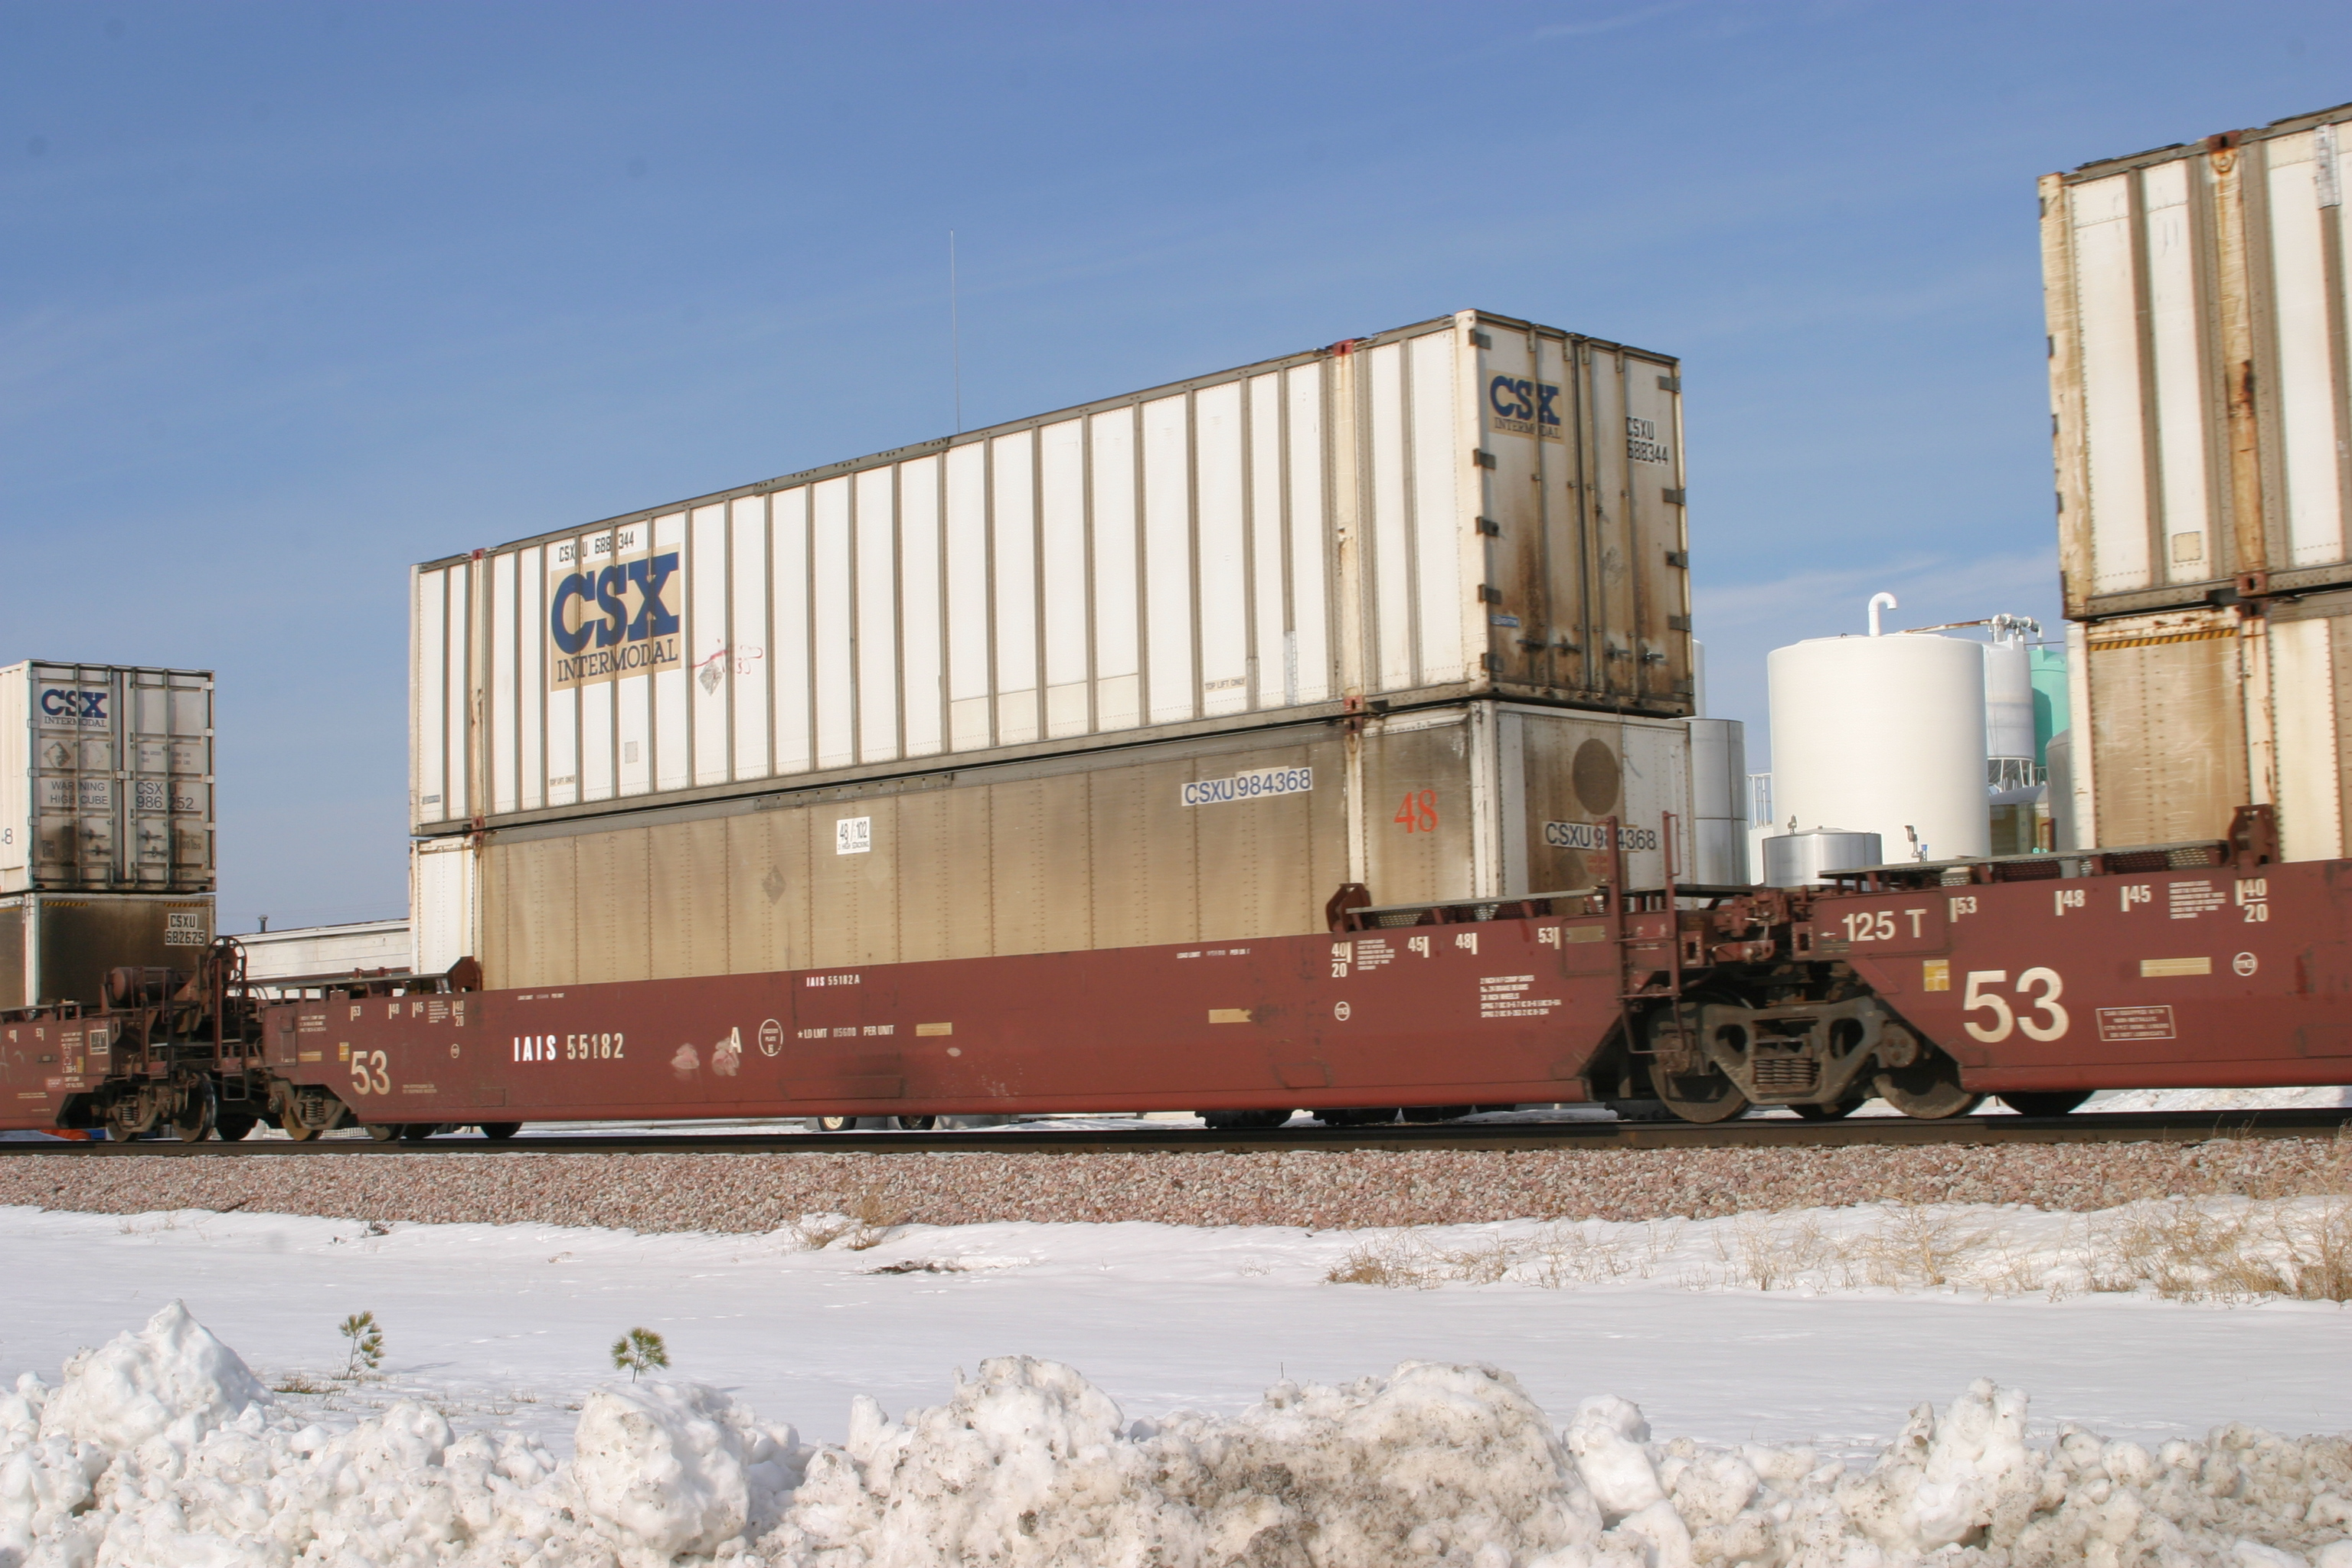 IAIS 55182 A at Walcott, IA, on 23-Dec-2005